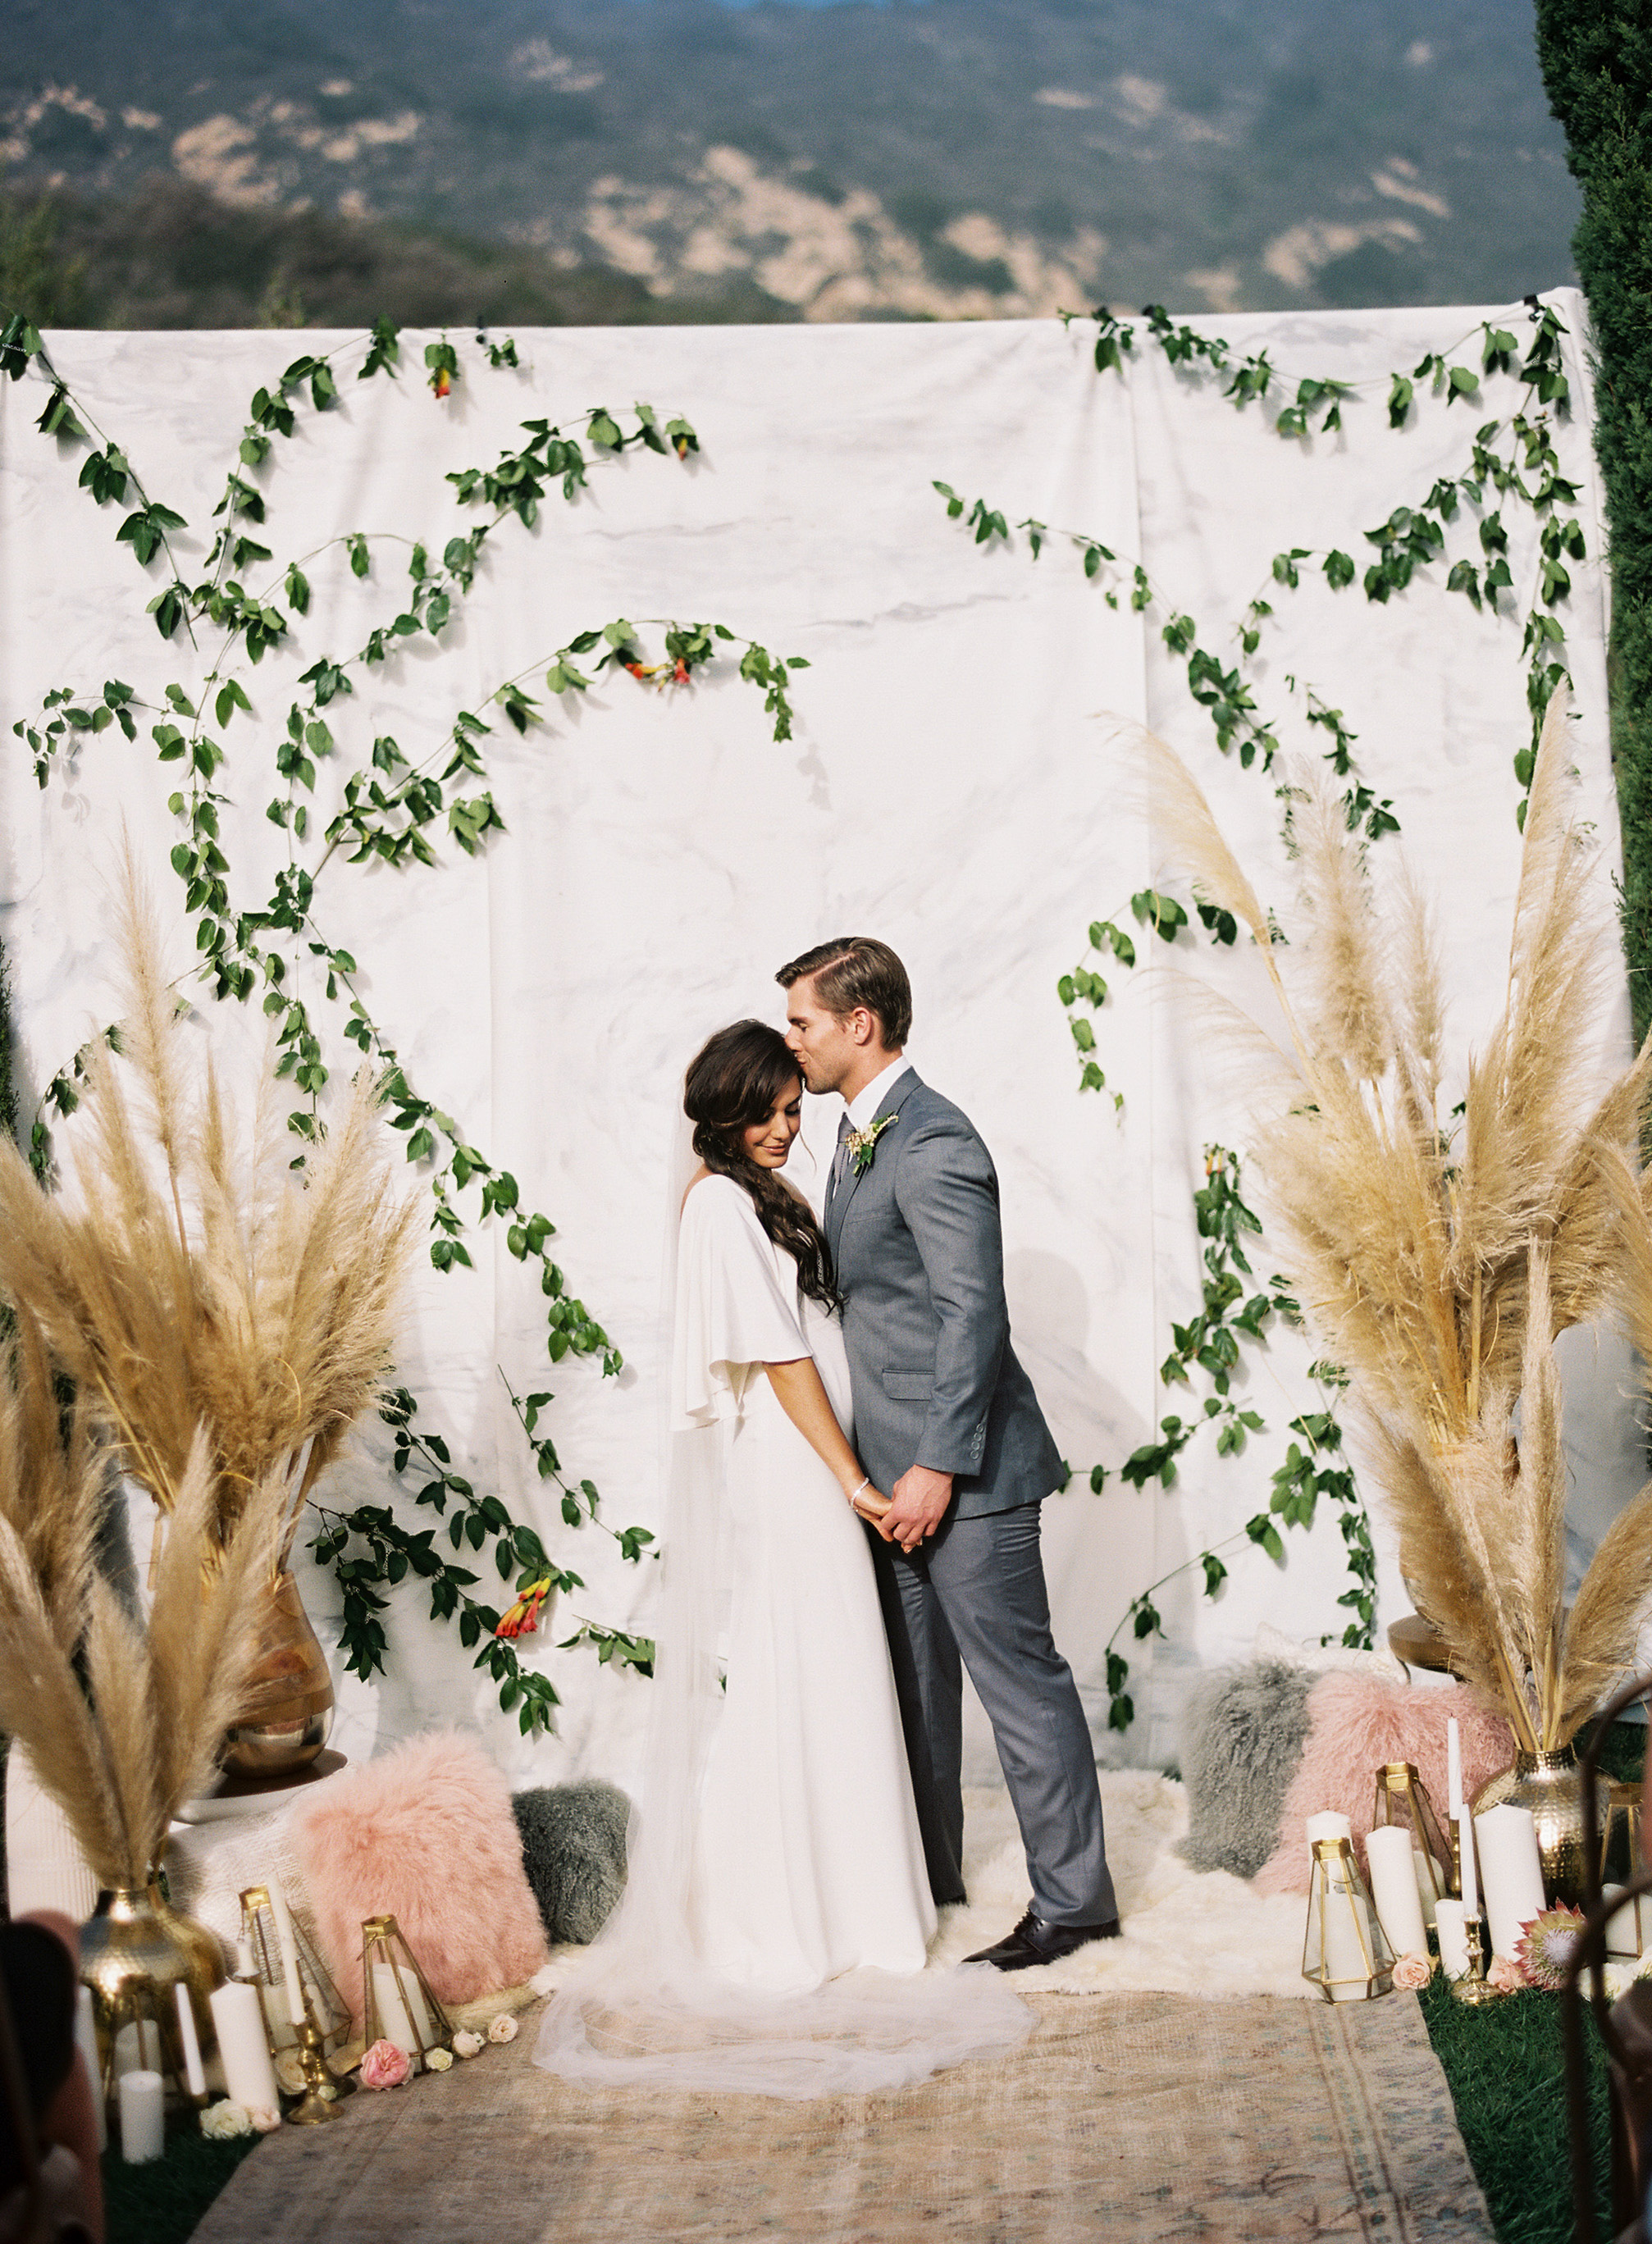 drop cloth backdrop tall pampas grass candles floral arrangement